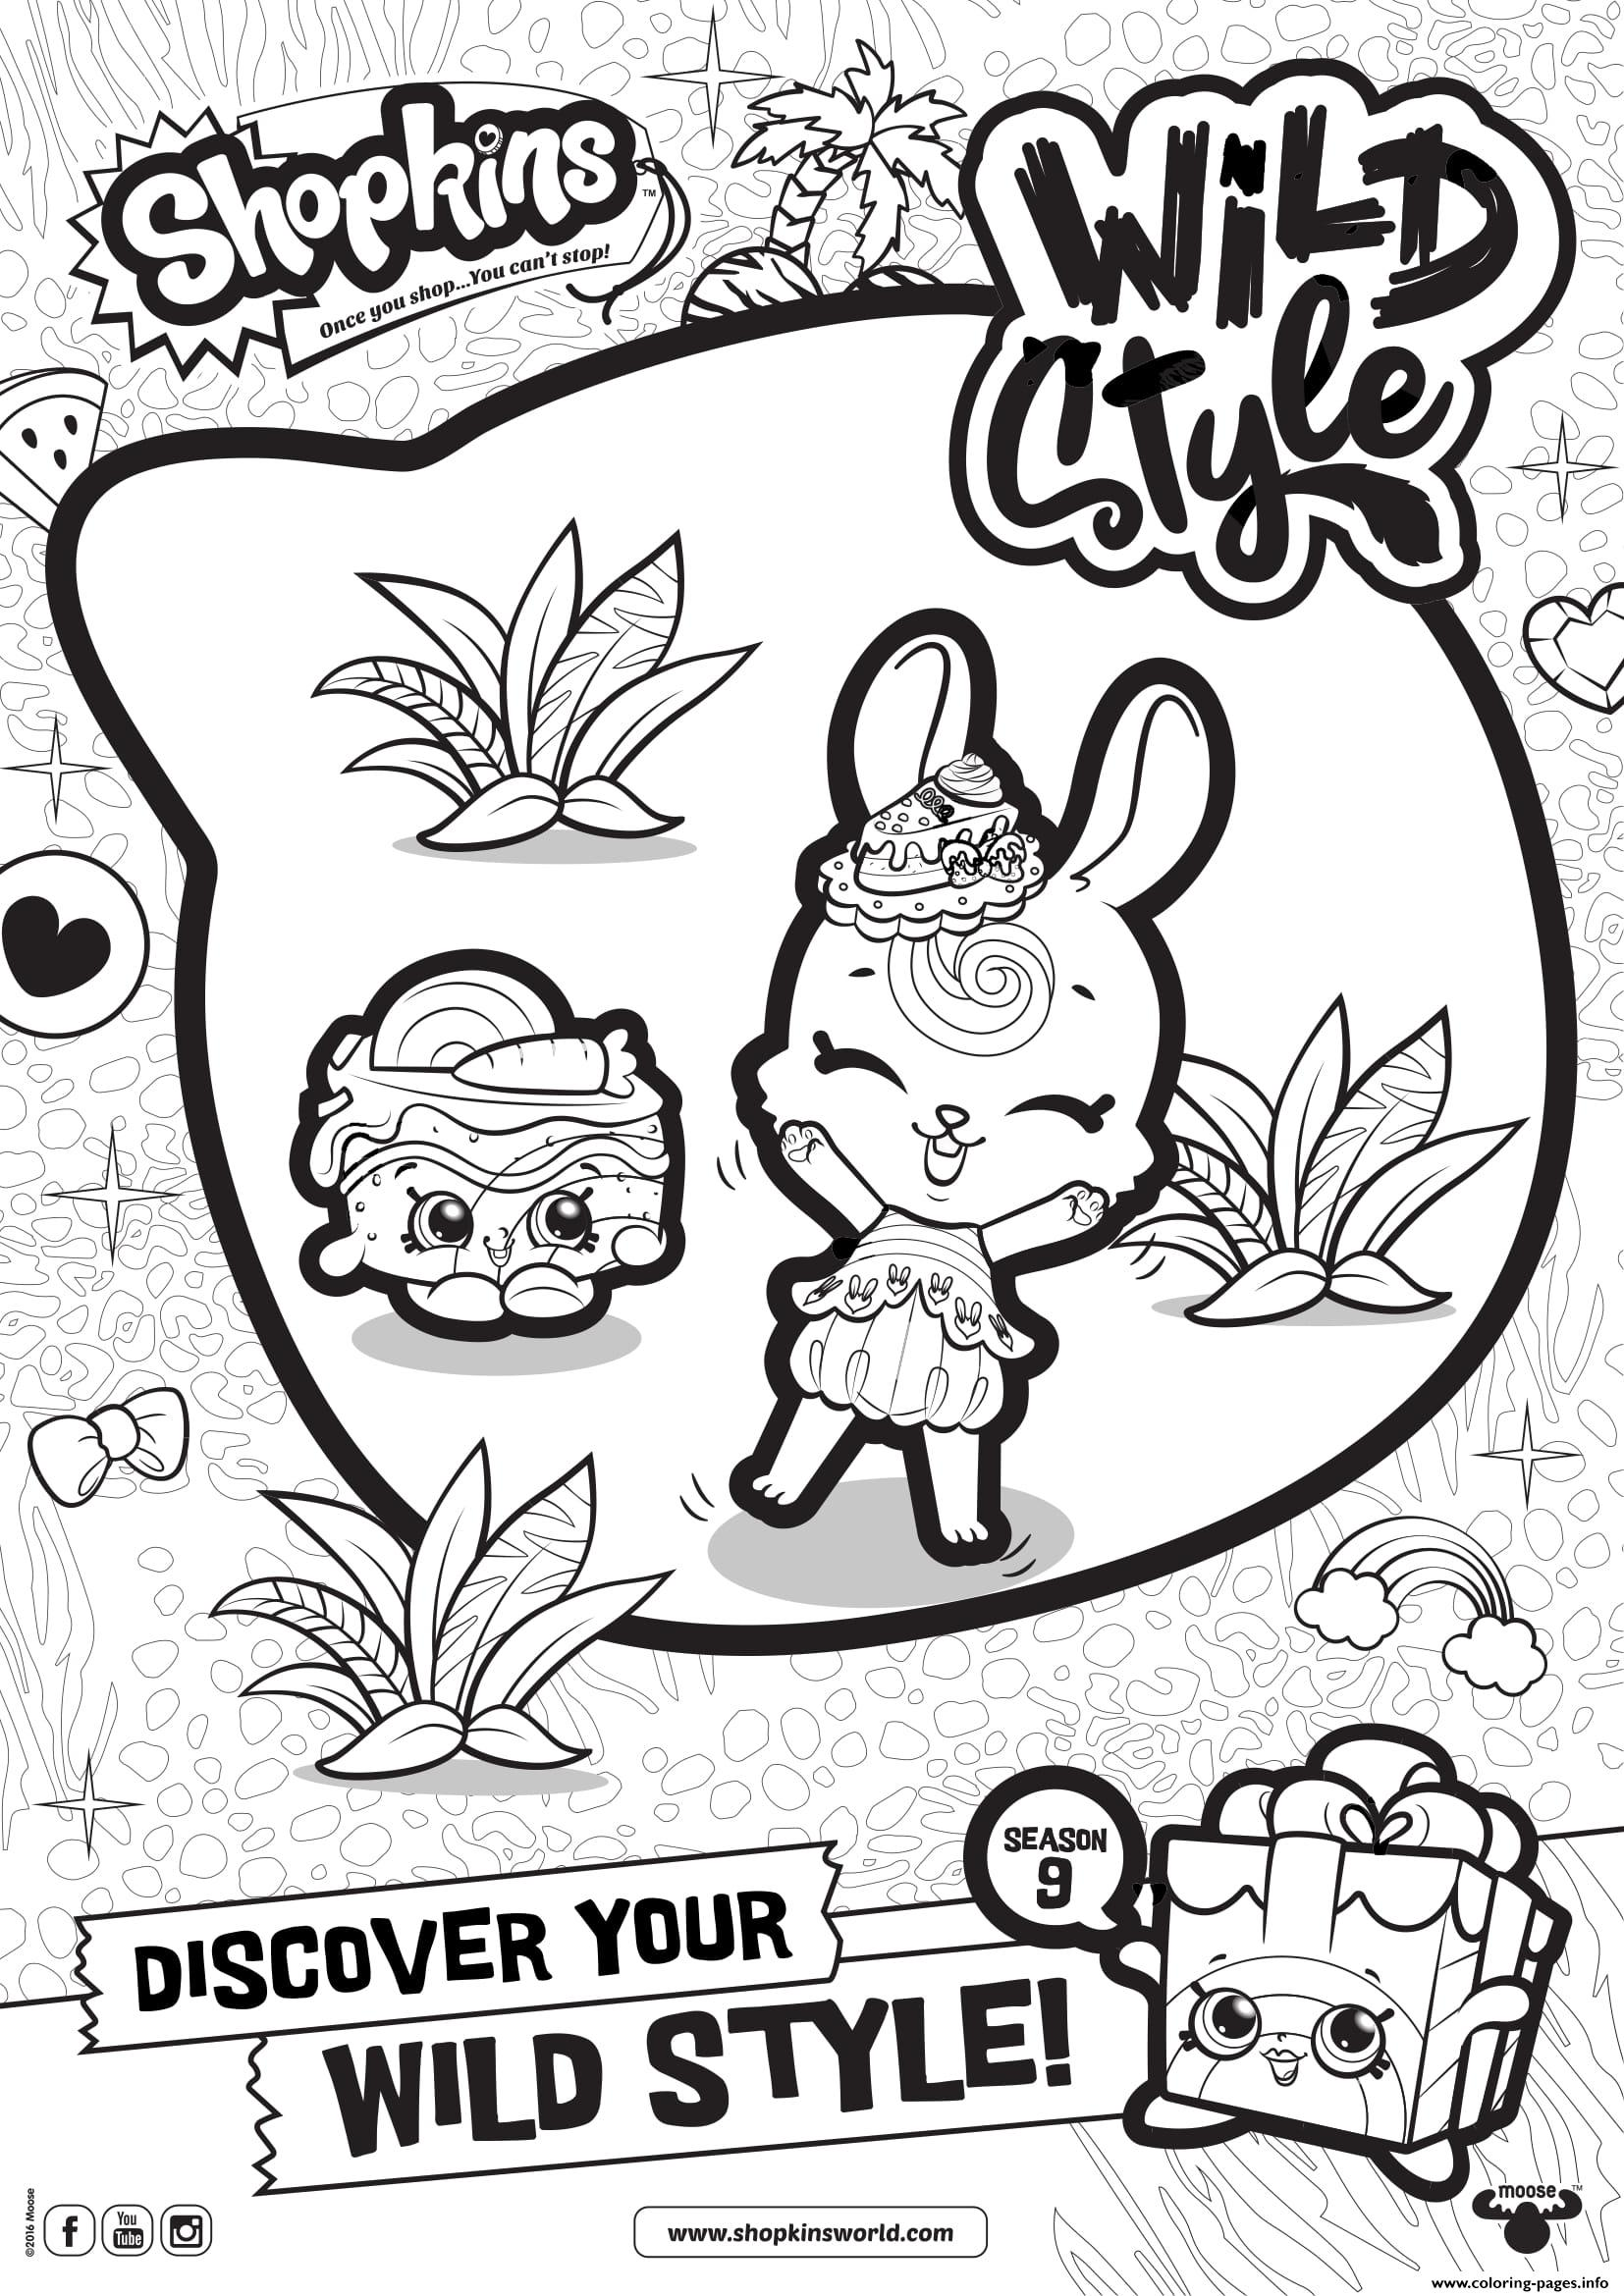 Shopkins Season 9 Wild Style 4 coloring pages